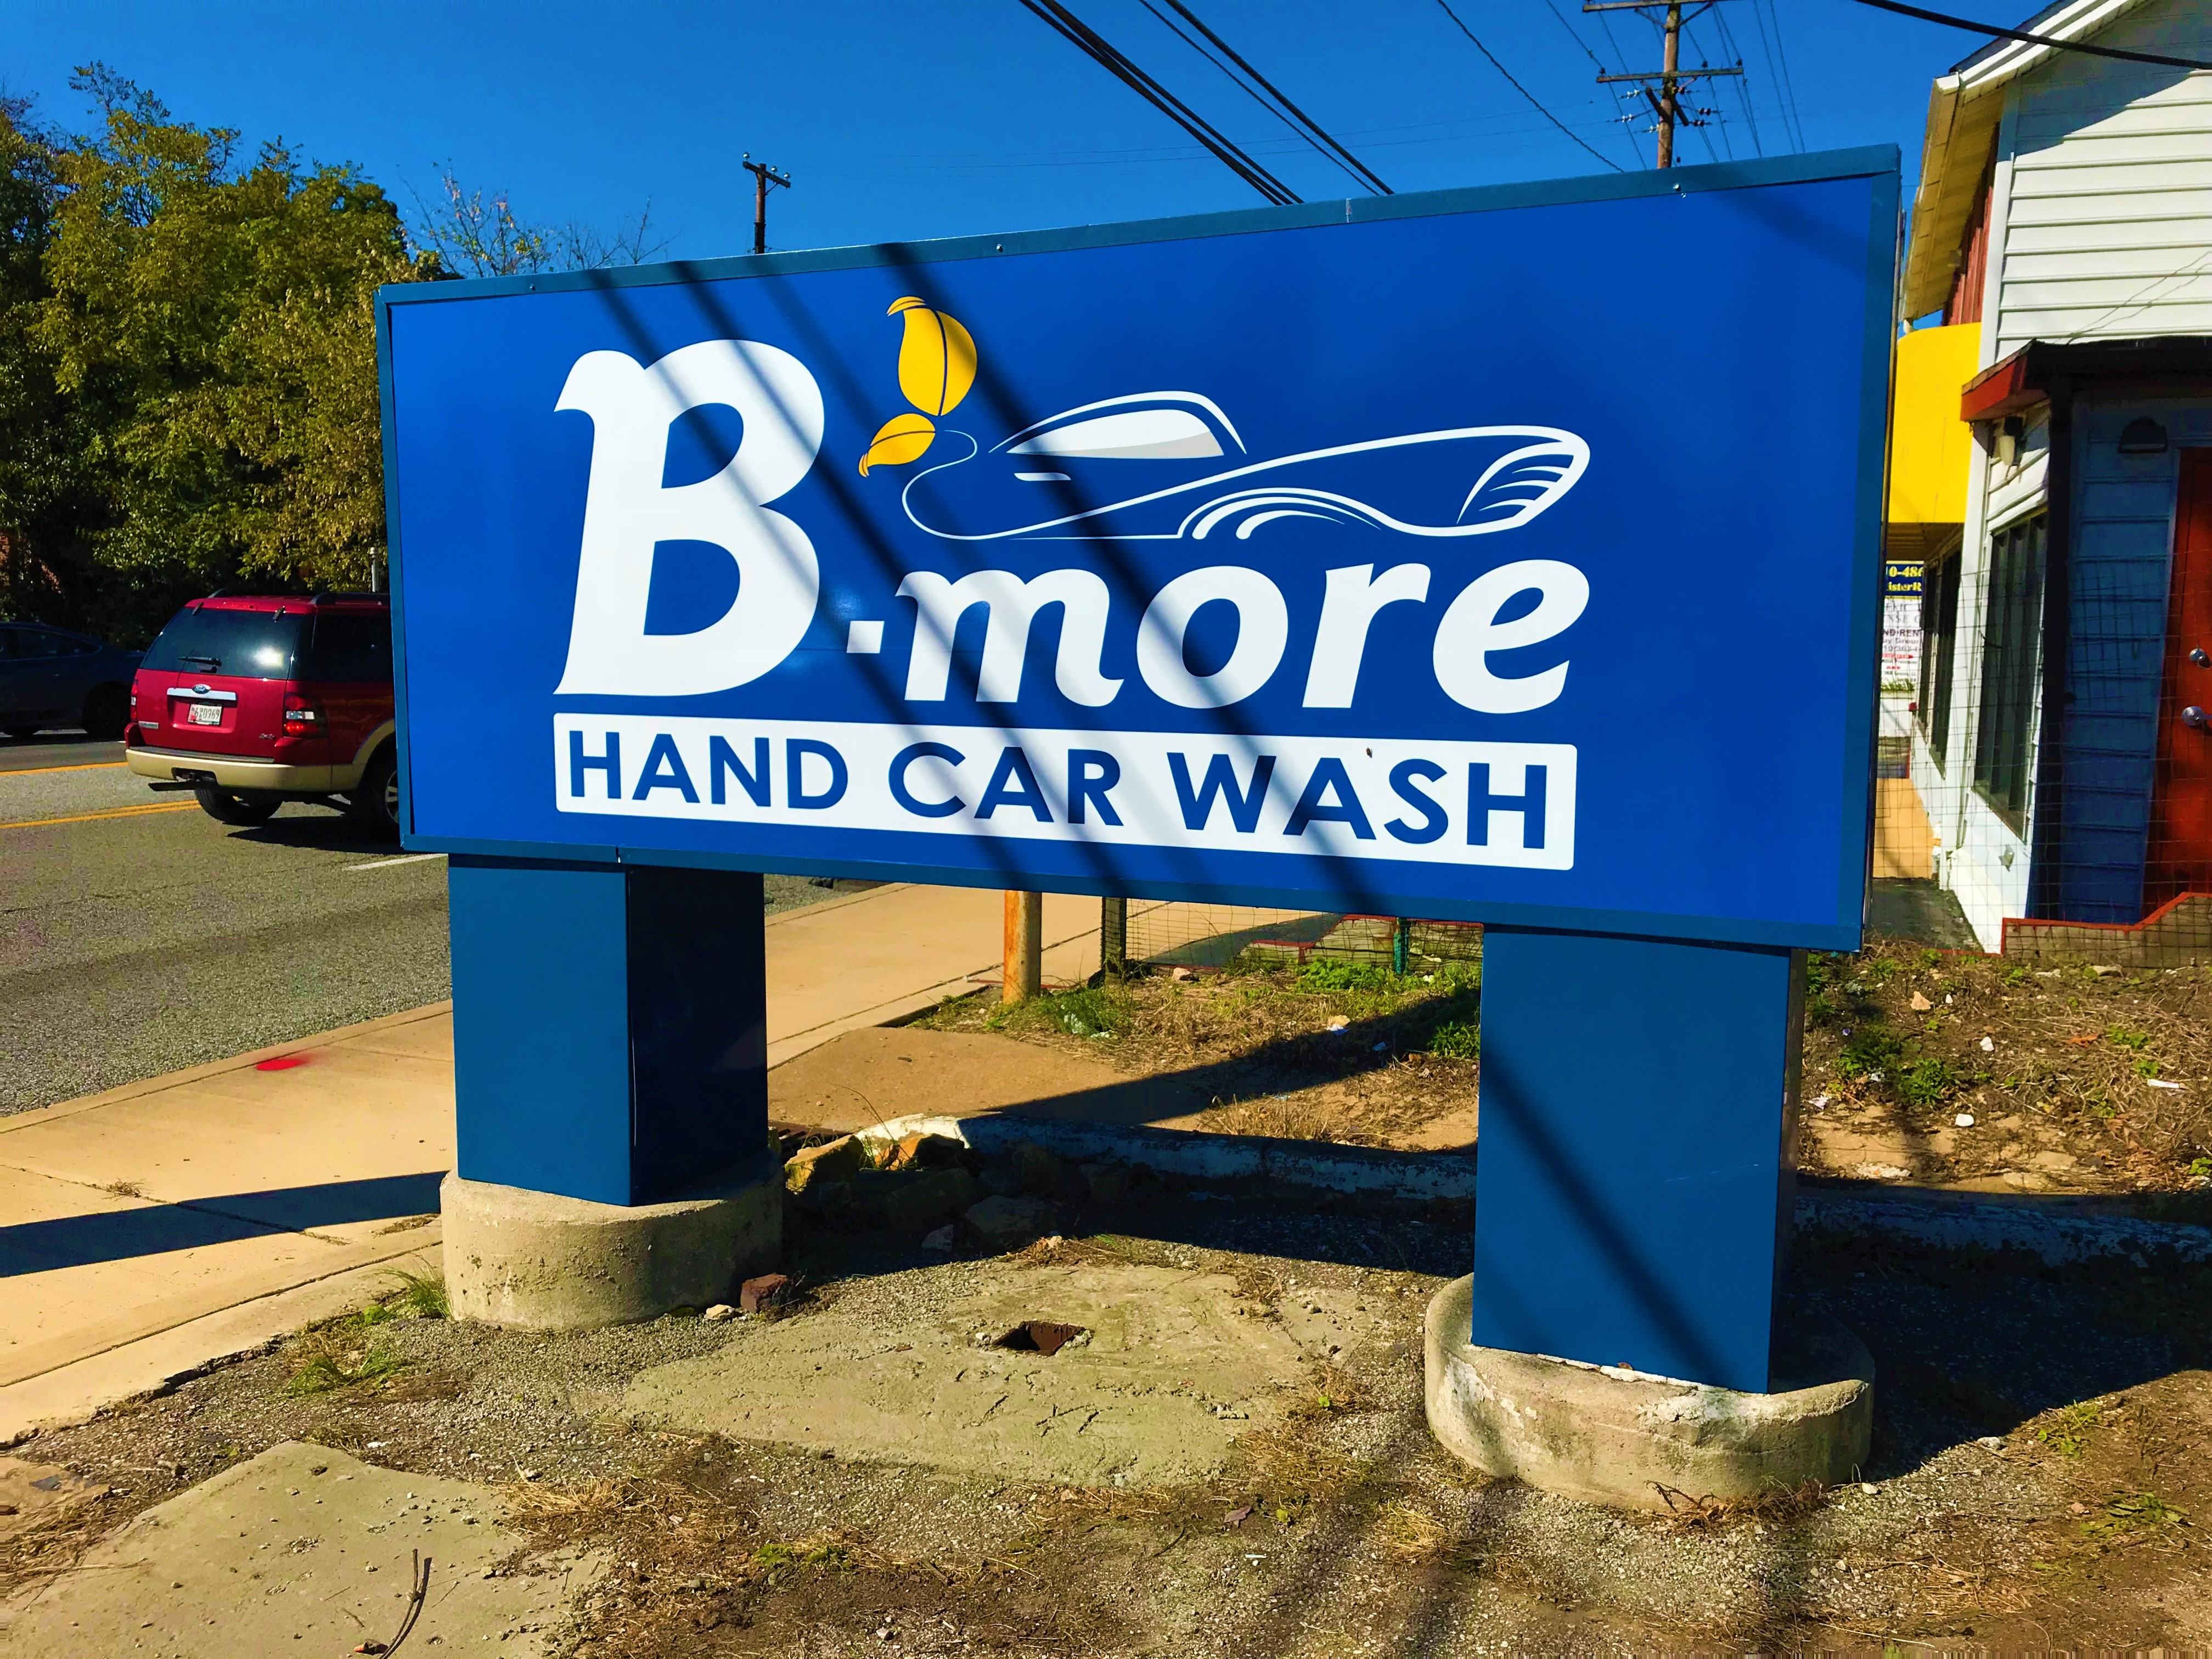 B'more Hand Car Wash